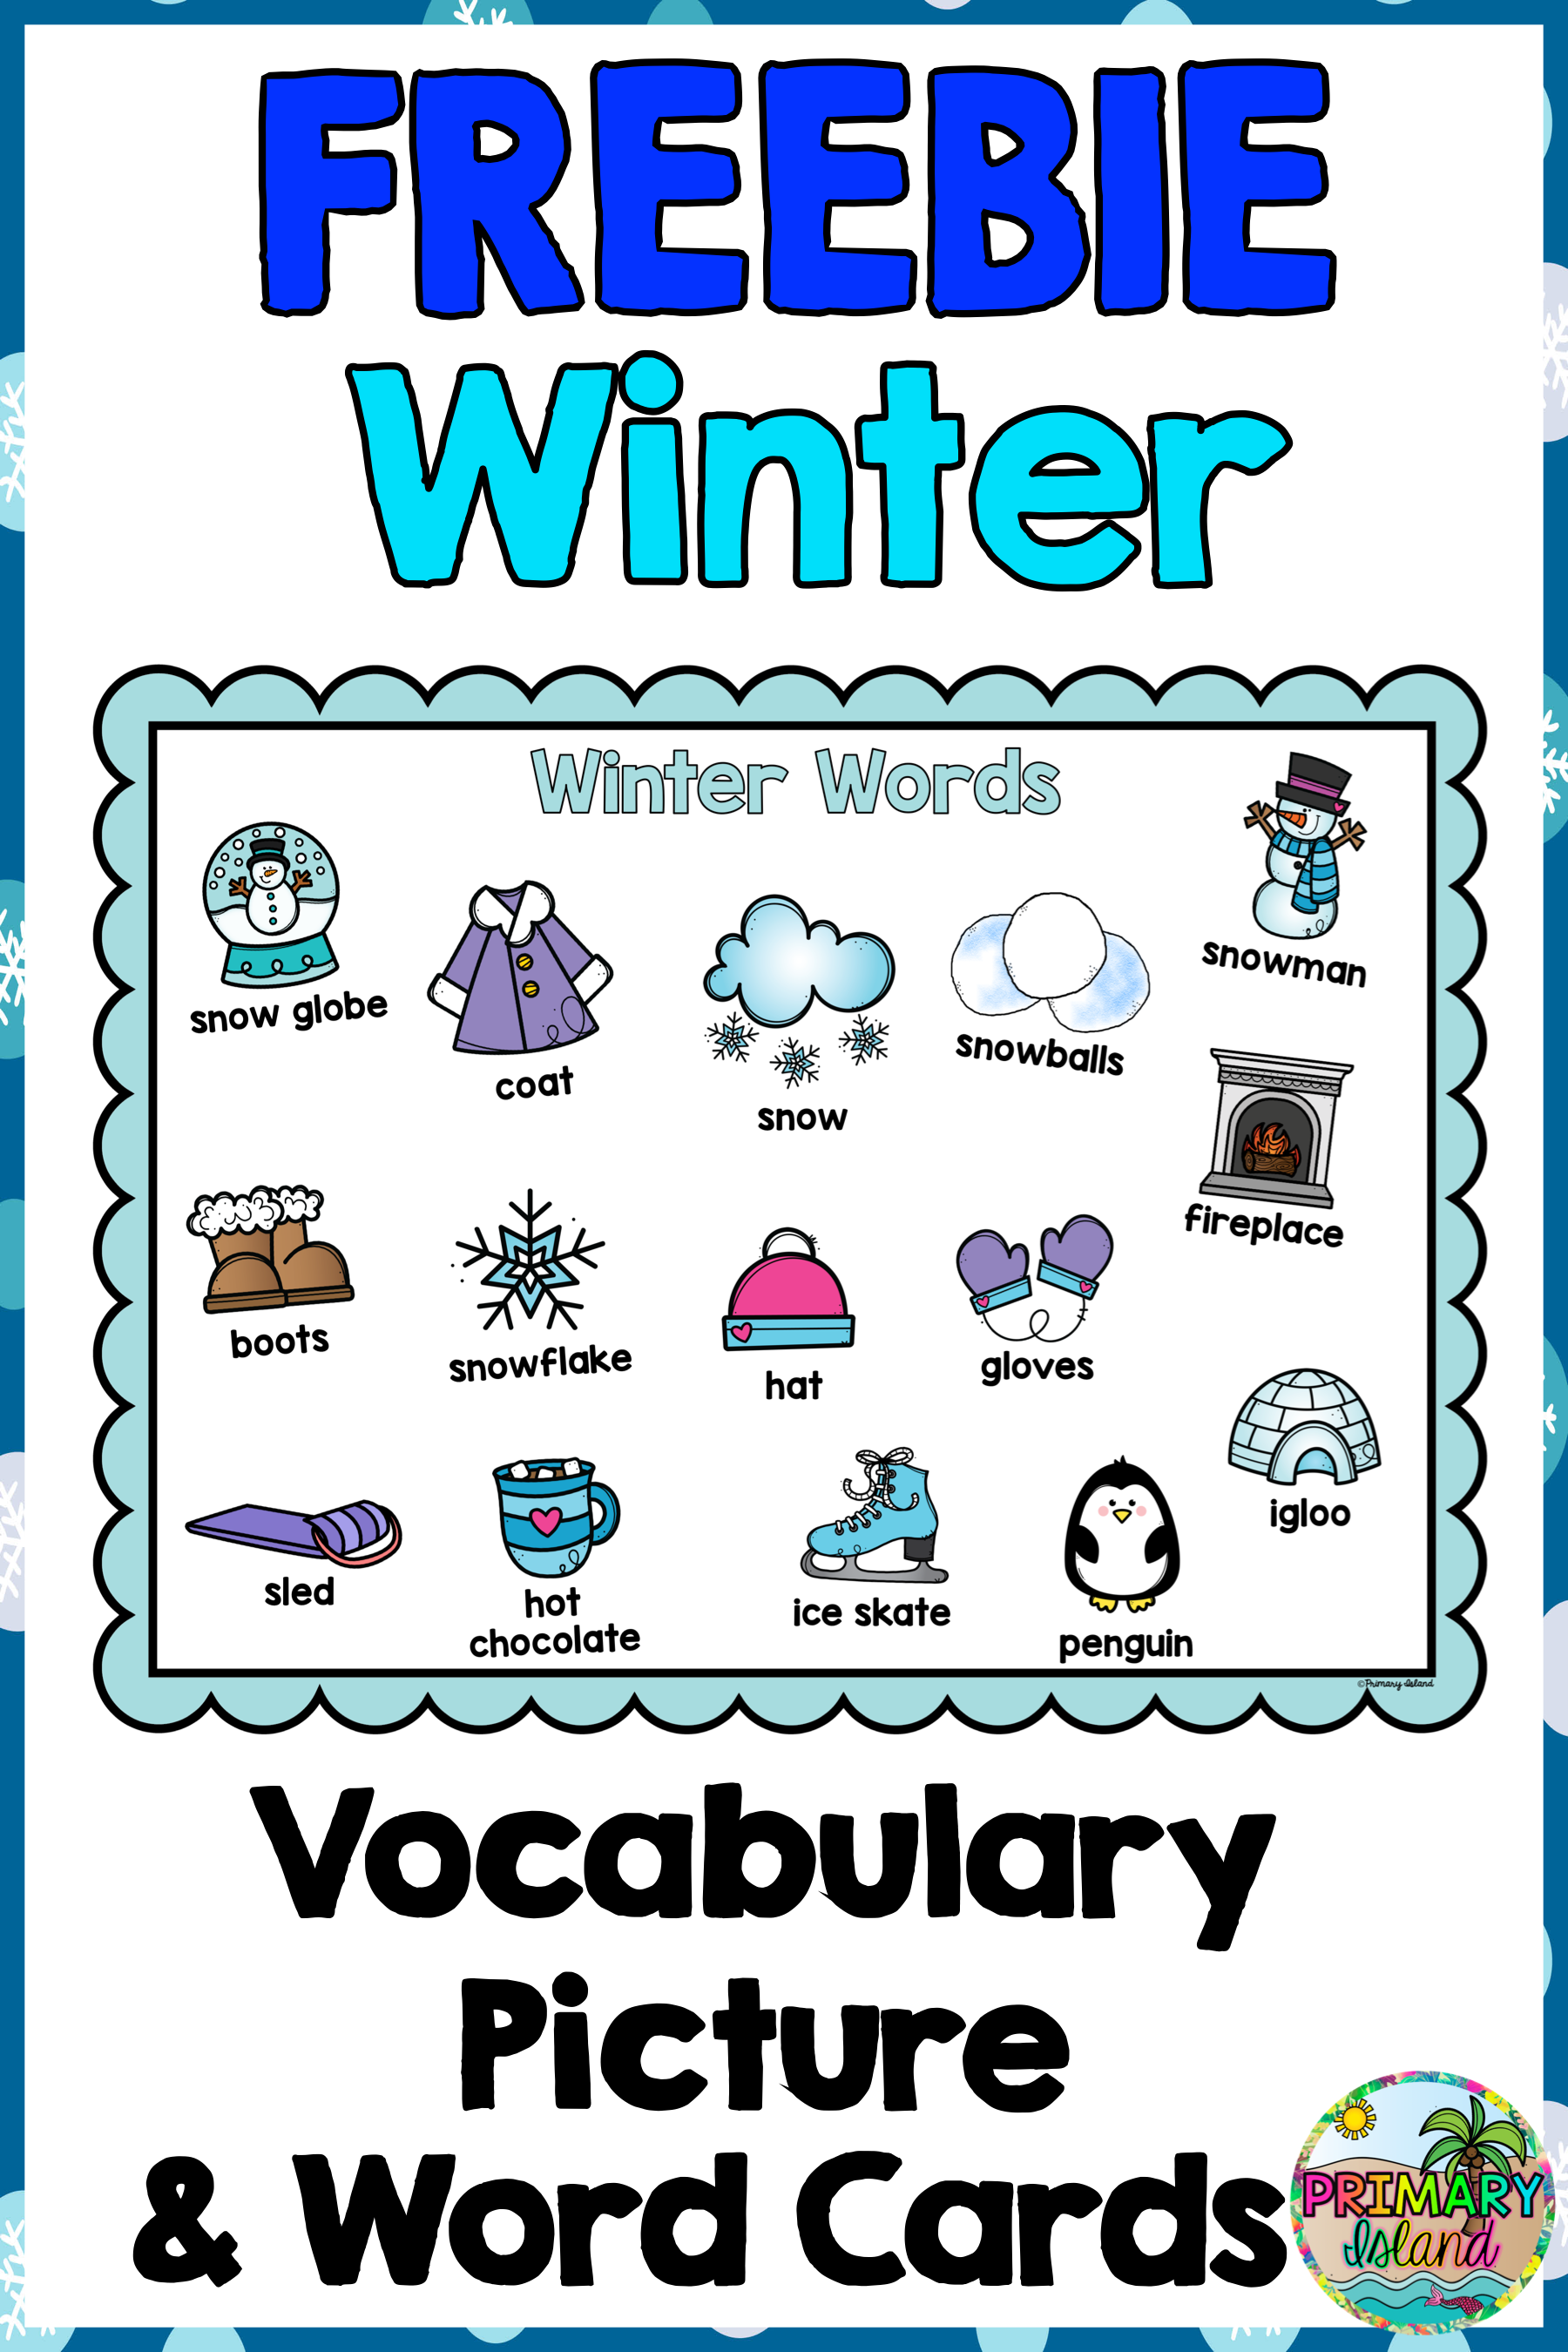 Winter Writing Vocabulary Picture Cards Freebie